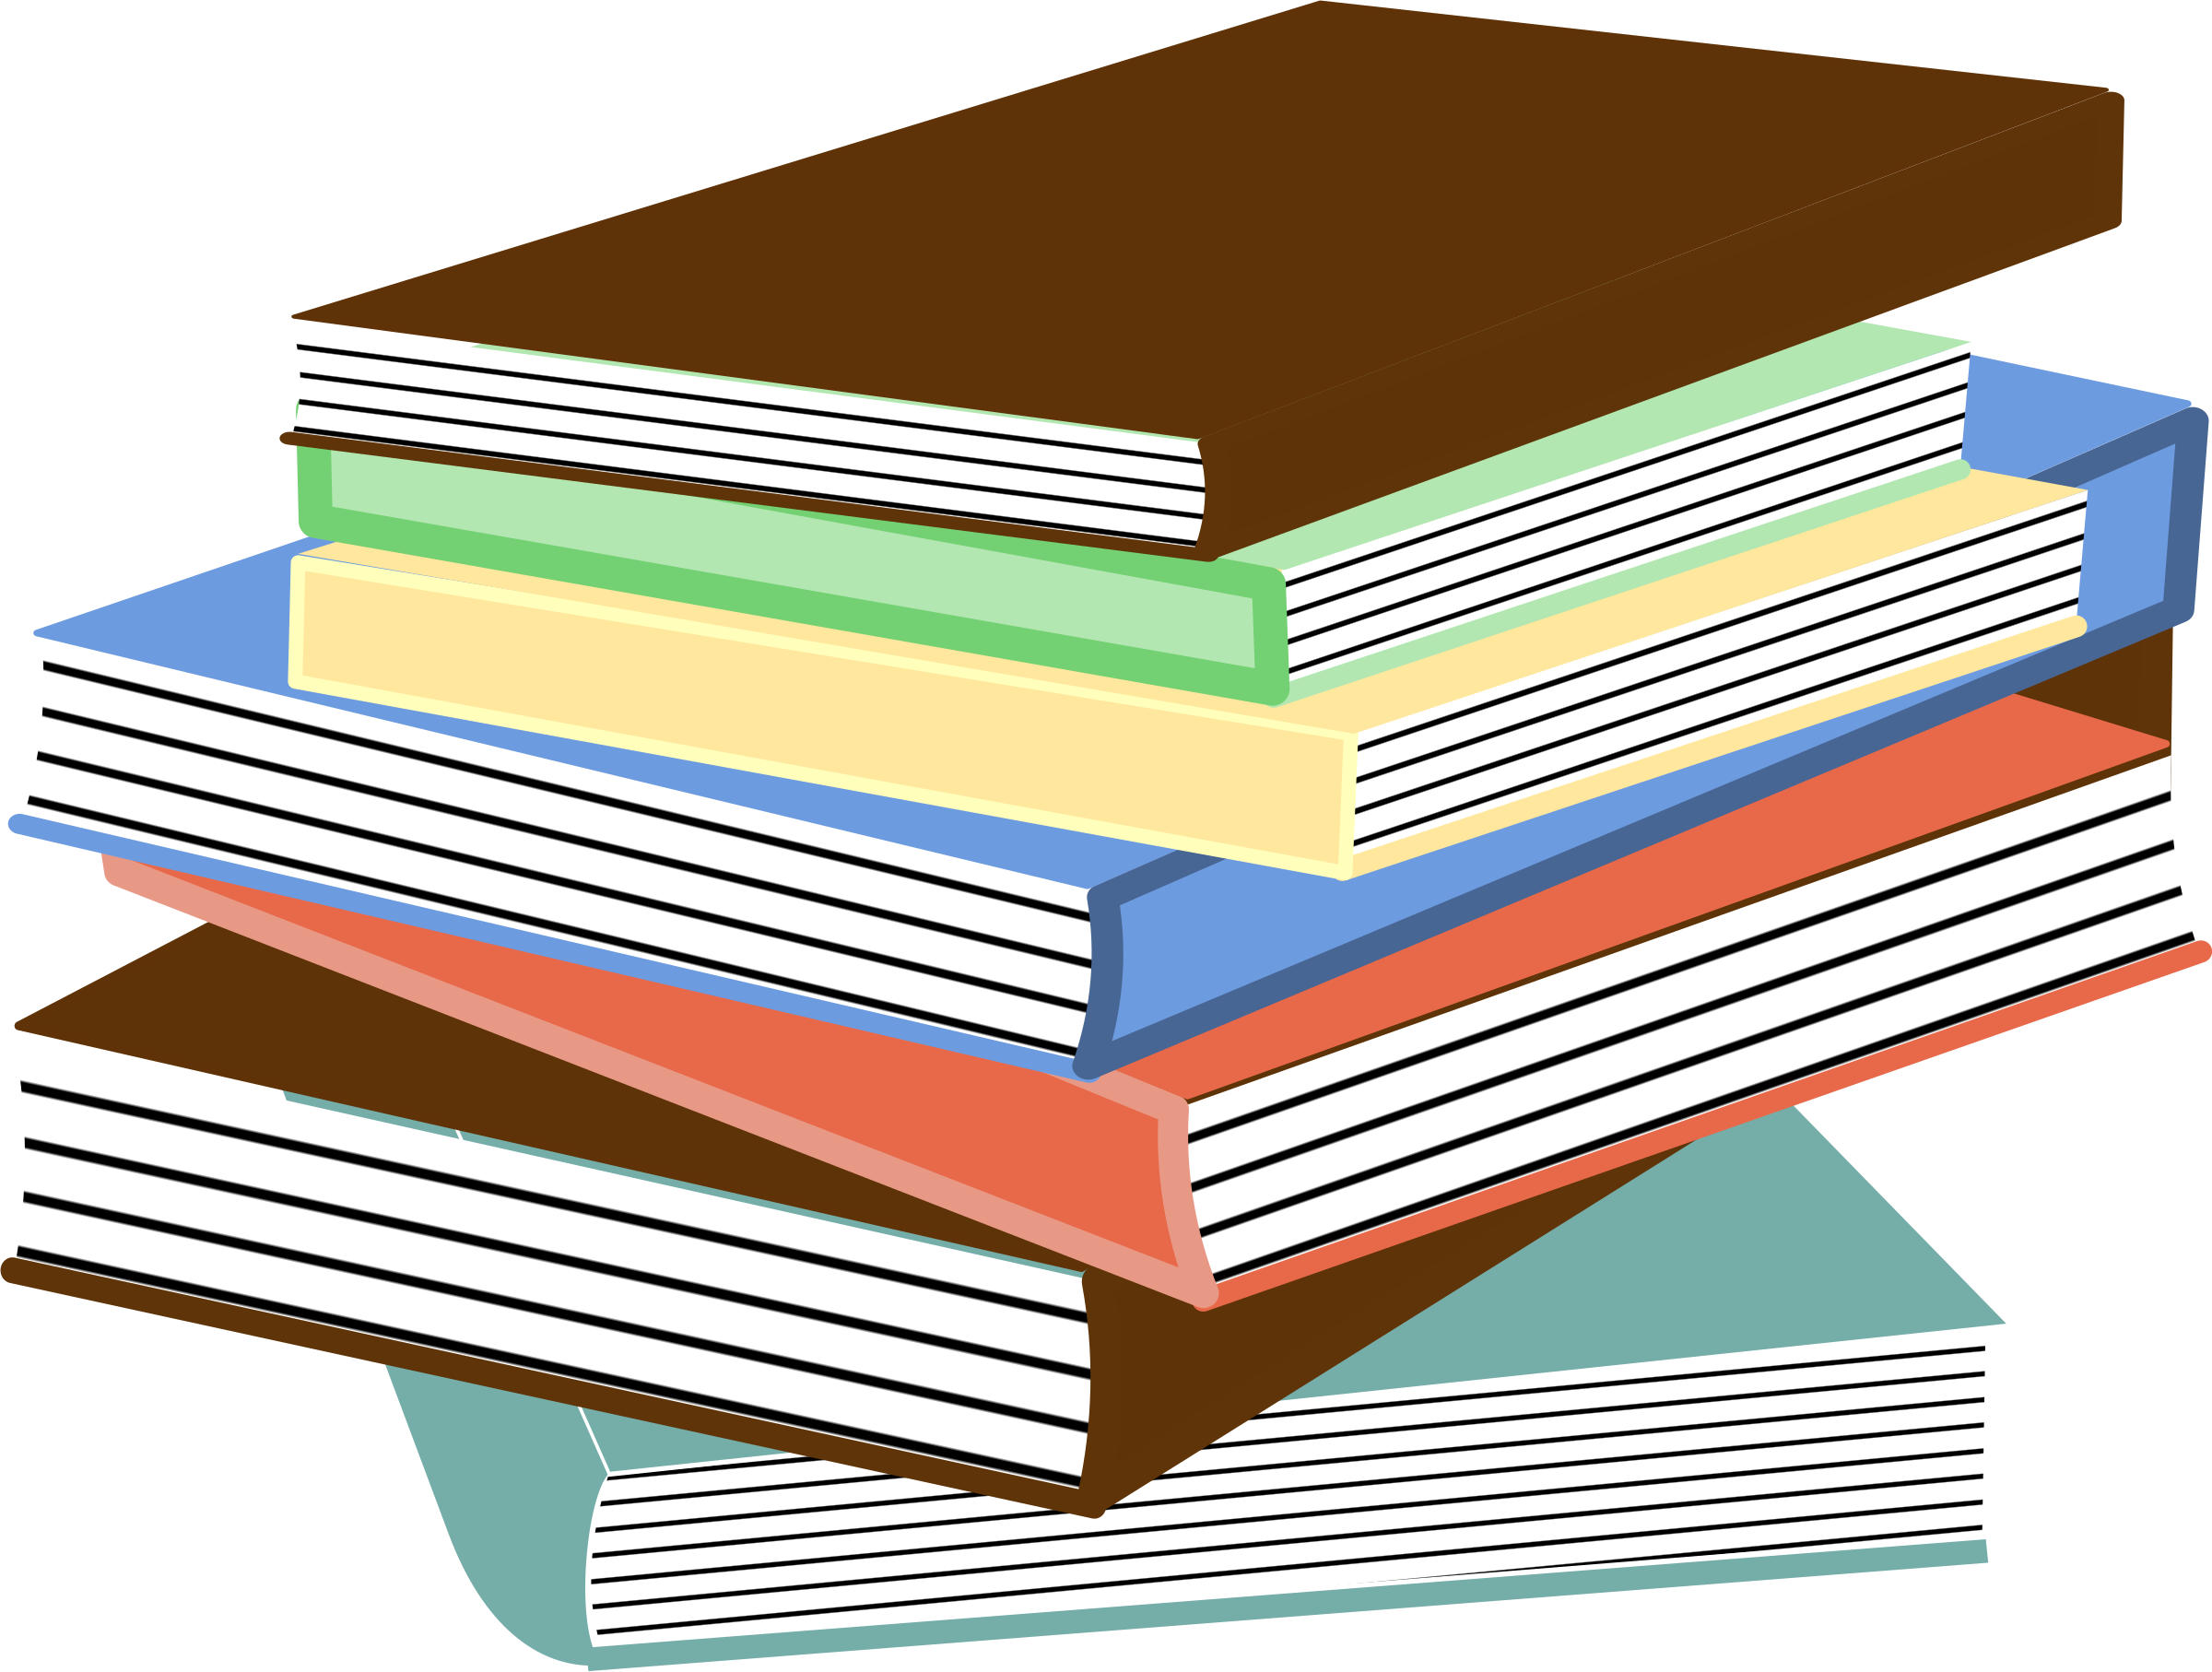 stack of books 01 by eady